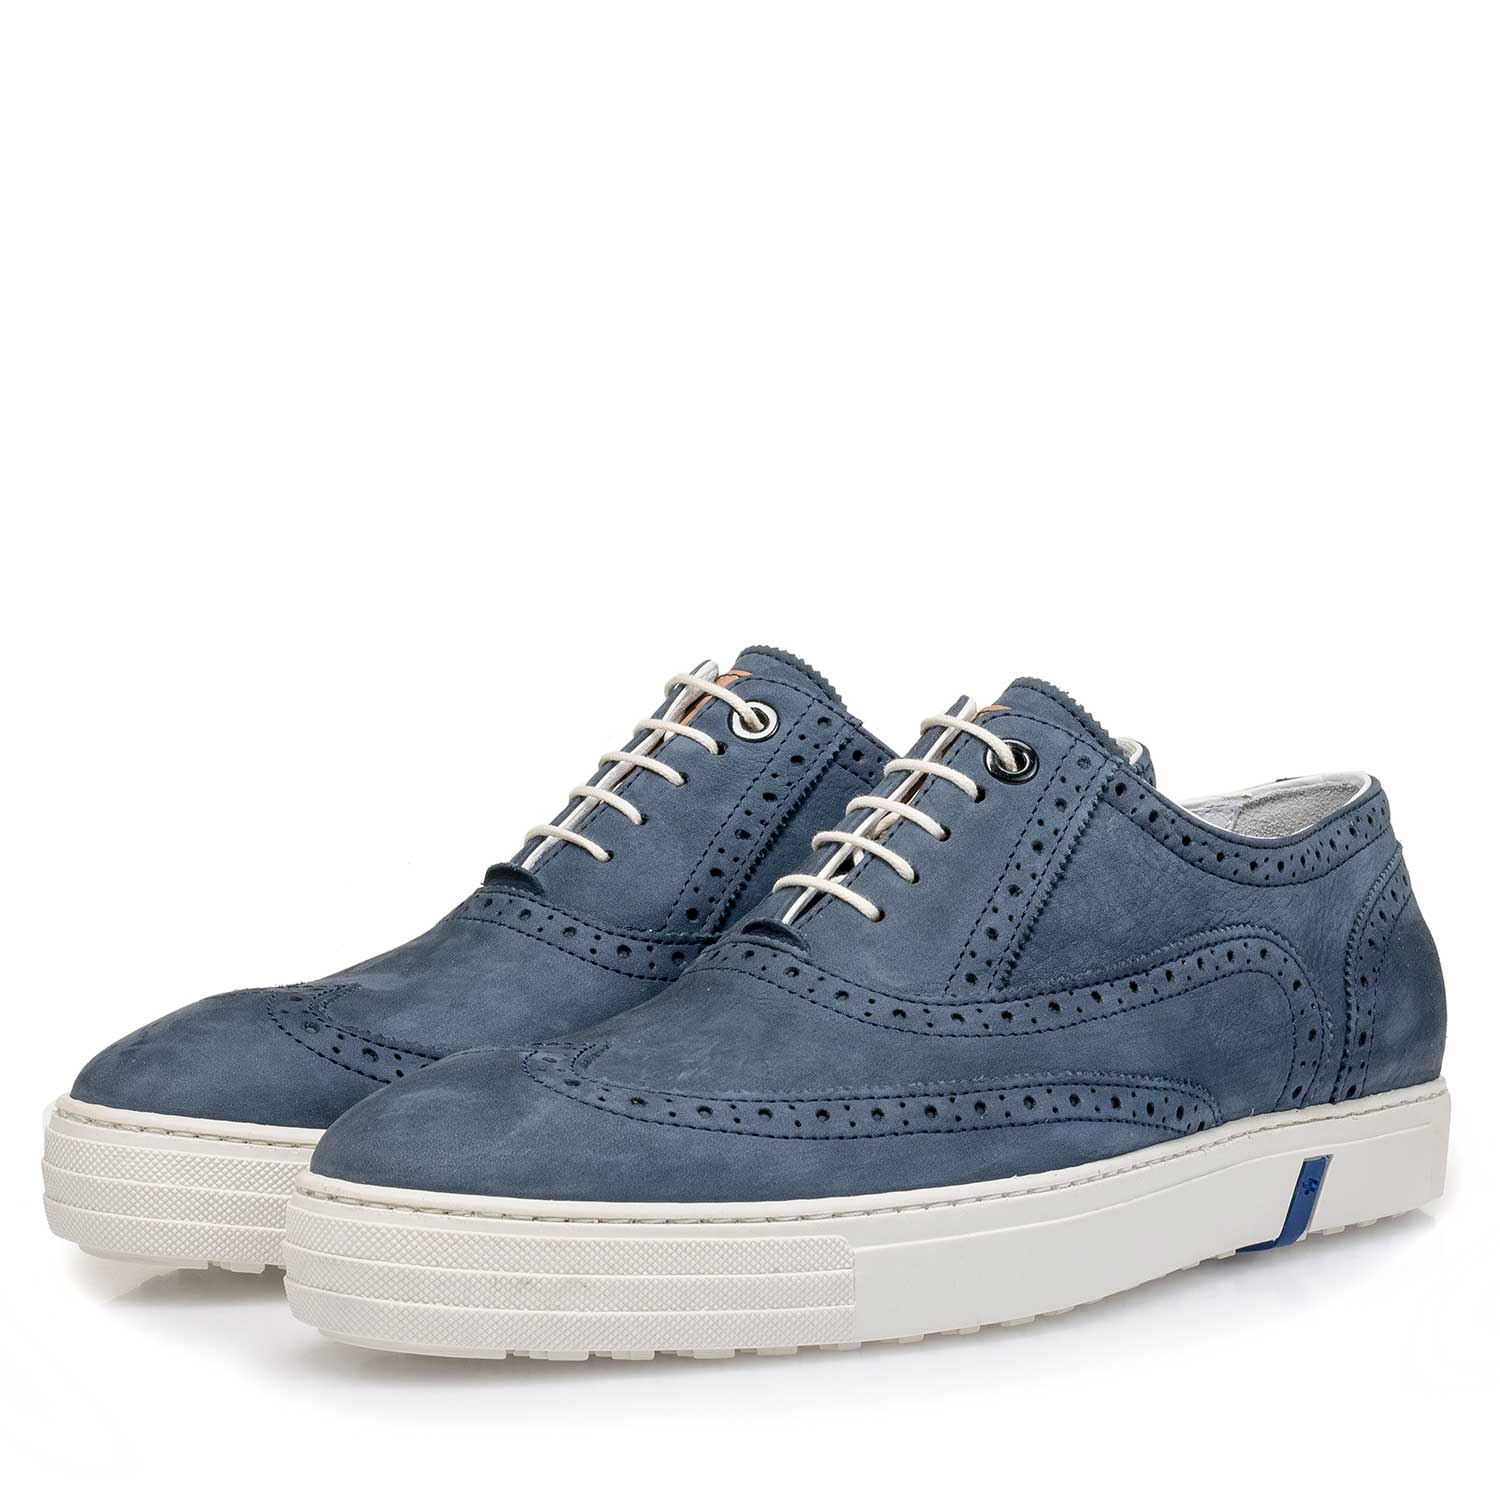 19073/06 - Blue nubuck leather brogue shoe